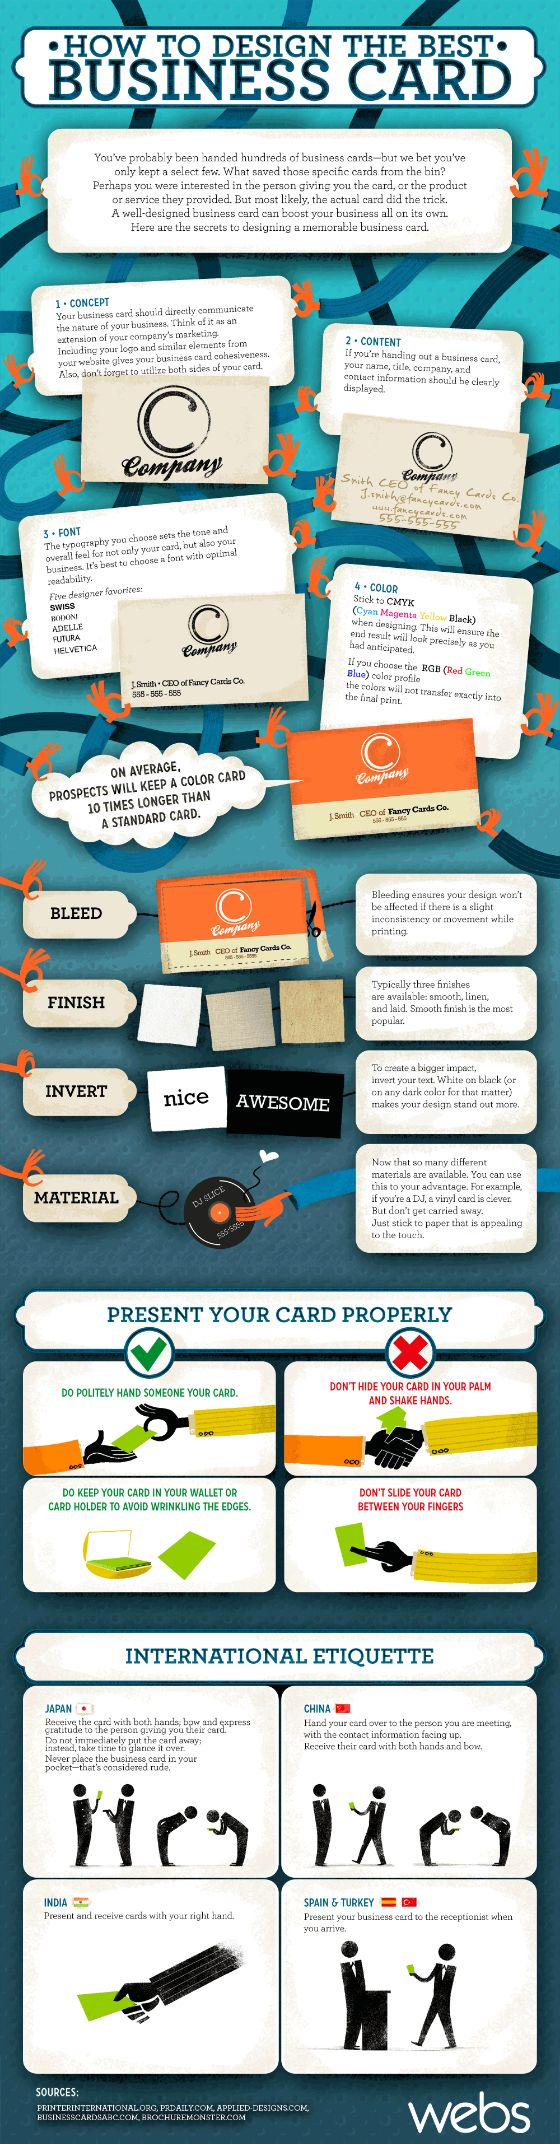 31 best Yearbook Biz Cards images on Pinterest | Compass, Compass ...